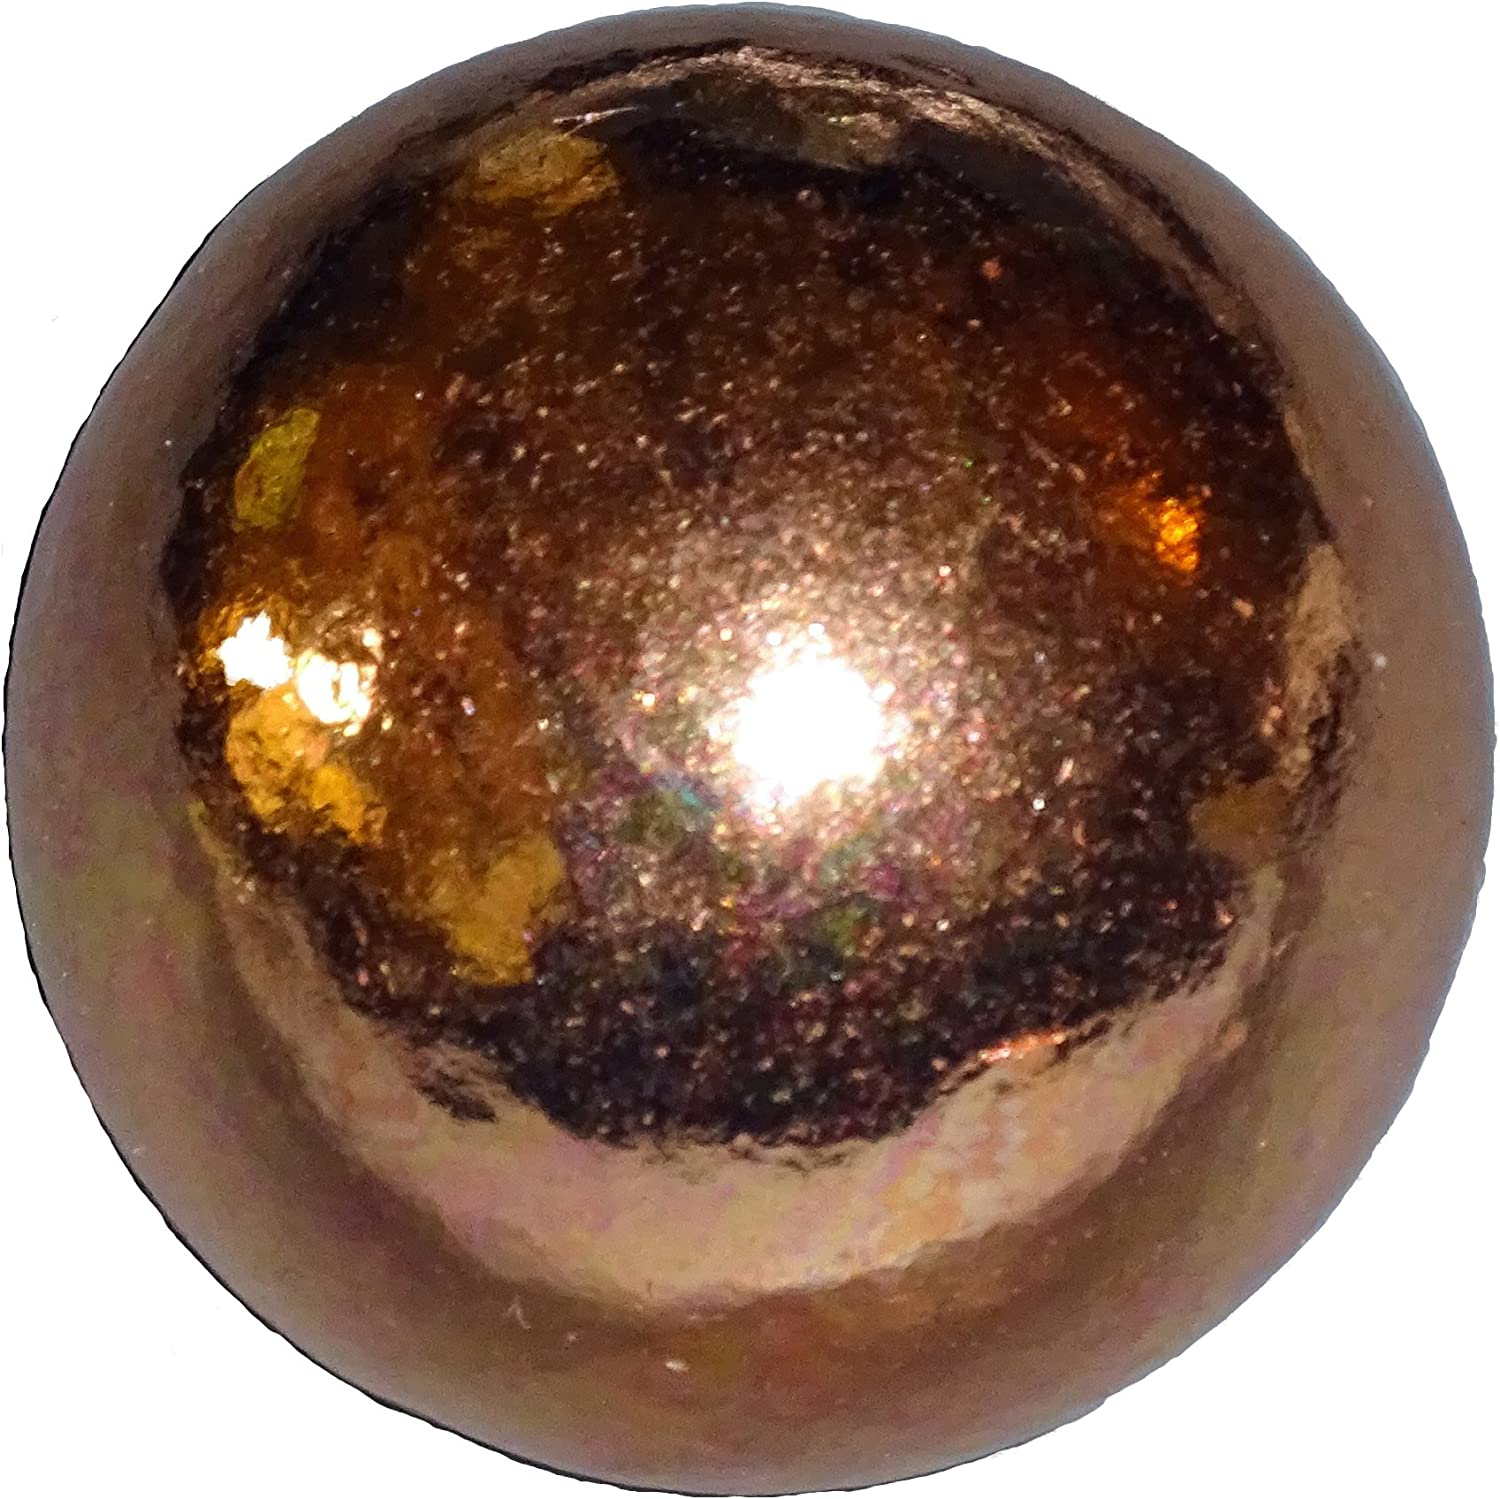 1pc Pure Copper 30mm Premium Copper Crystal Healing Gemstone Energy Orb Sphere Ball Mineral of Energy and Mental Agility by Sublime Gifts